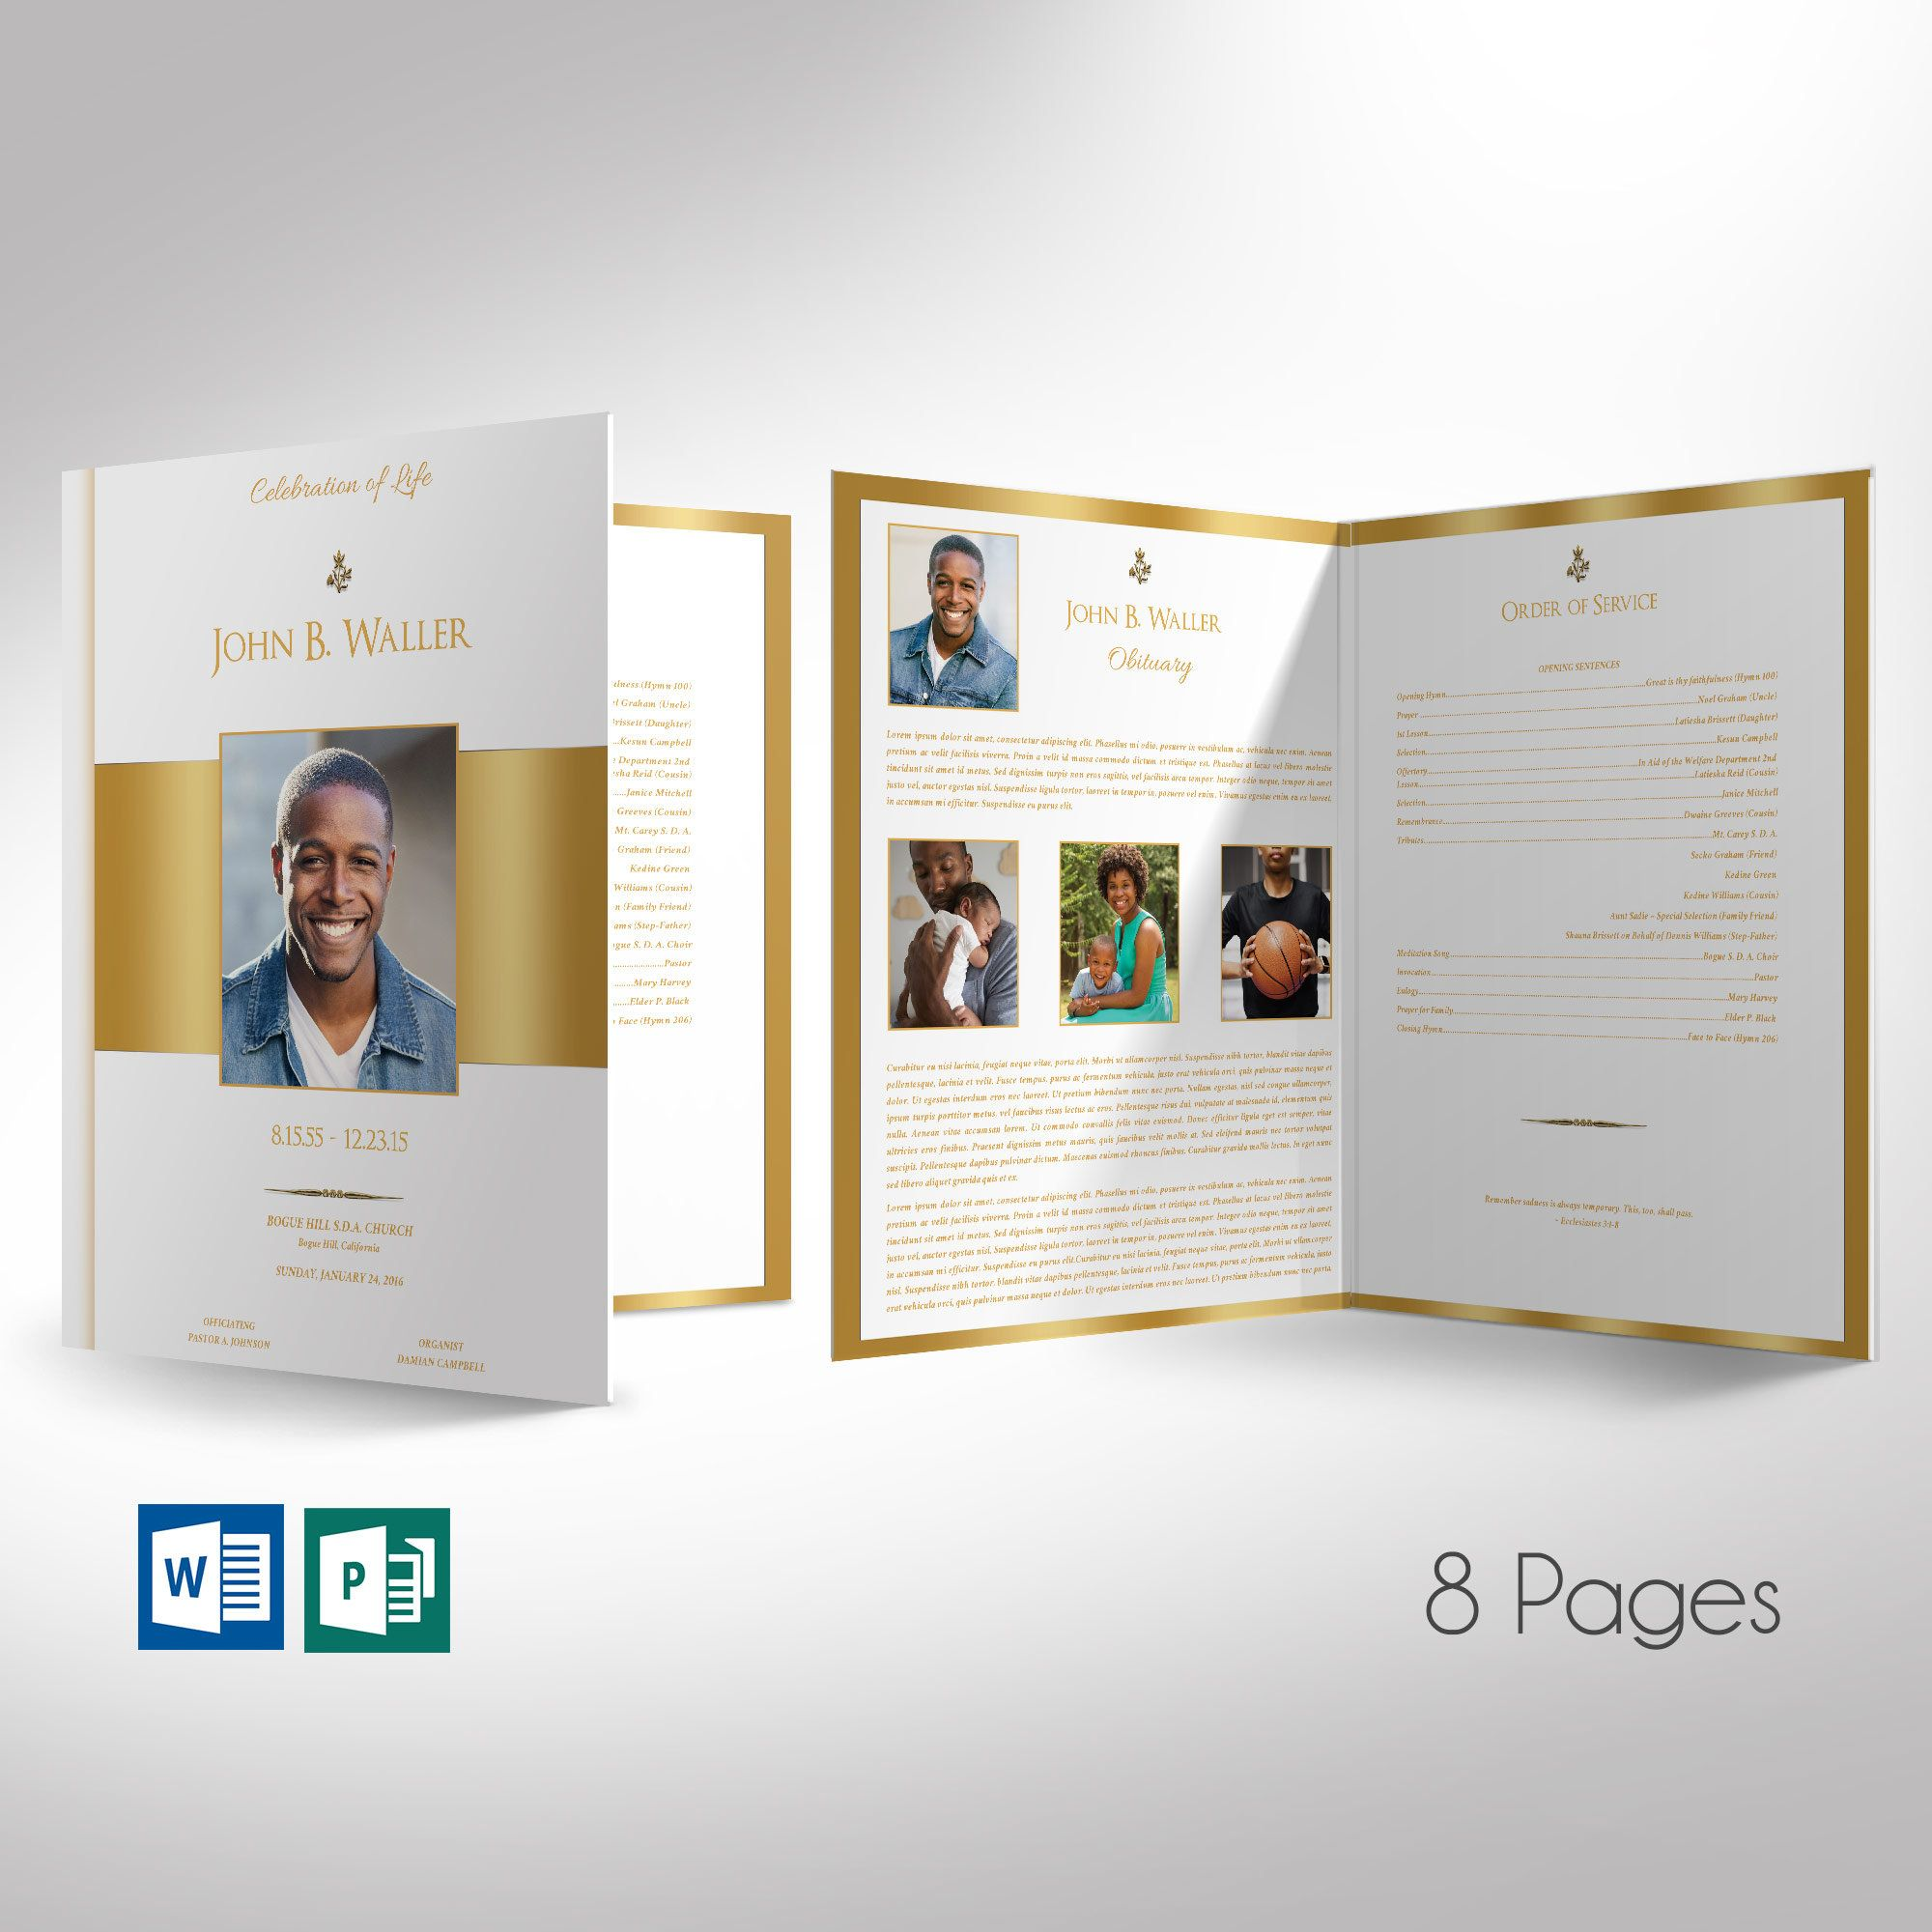 White Gold Funeral Program Word Publisher Large Template 8 Pages Editable Colors Print Size 11 X17 Bi Fold To 8 5 X11 Funeral Program Funeral Program Template Word Template